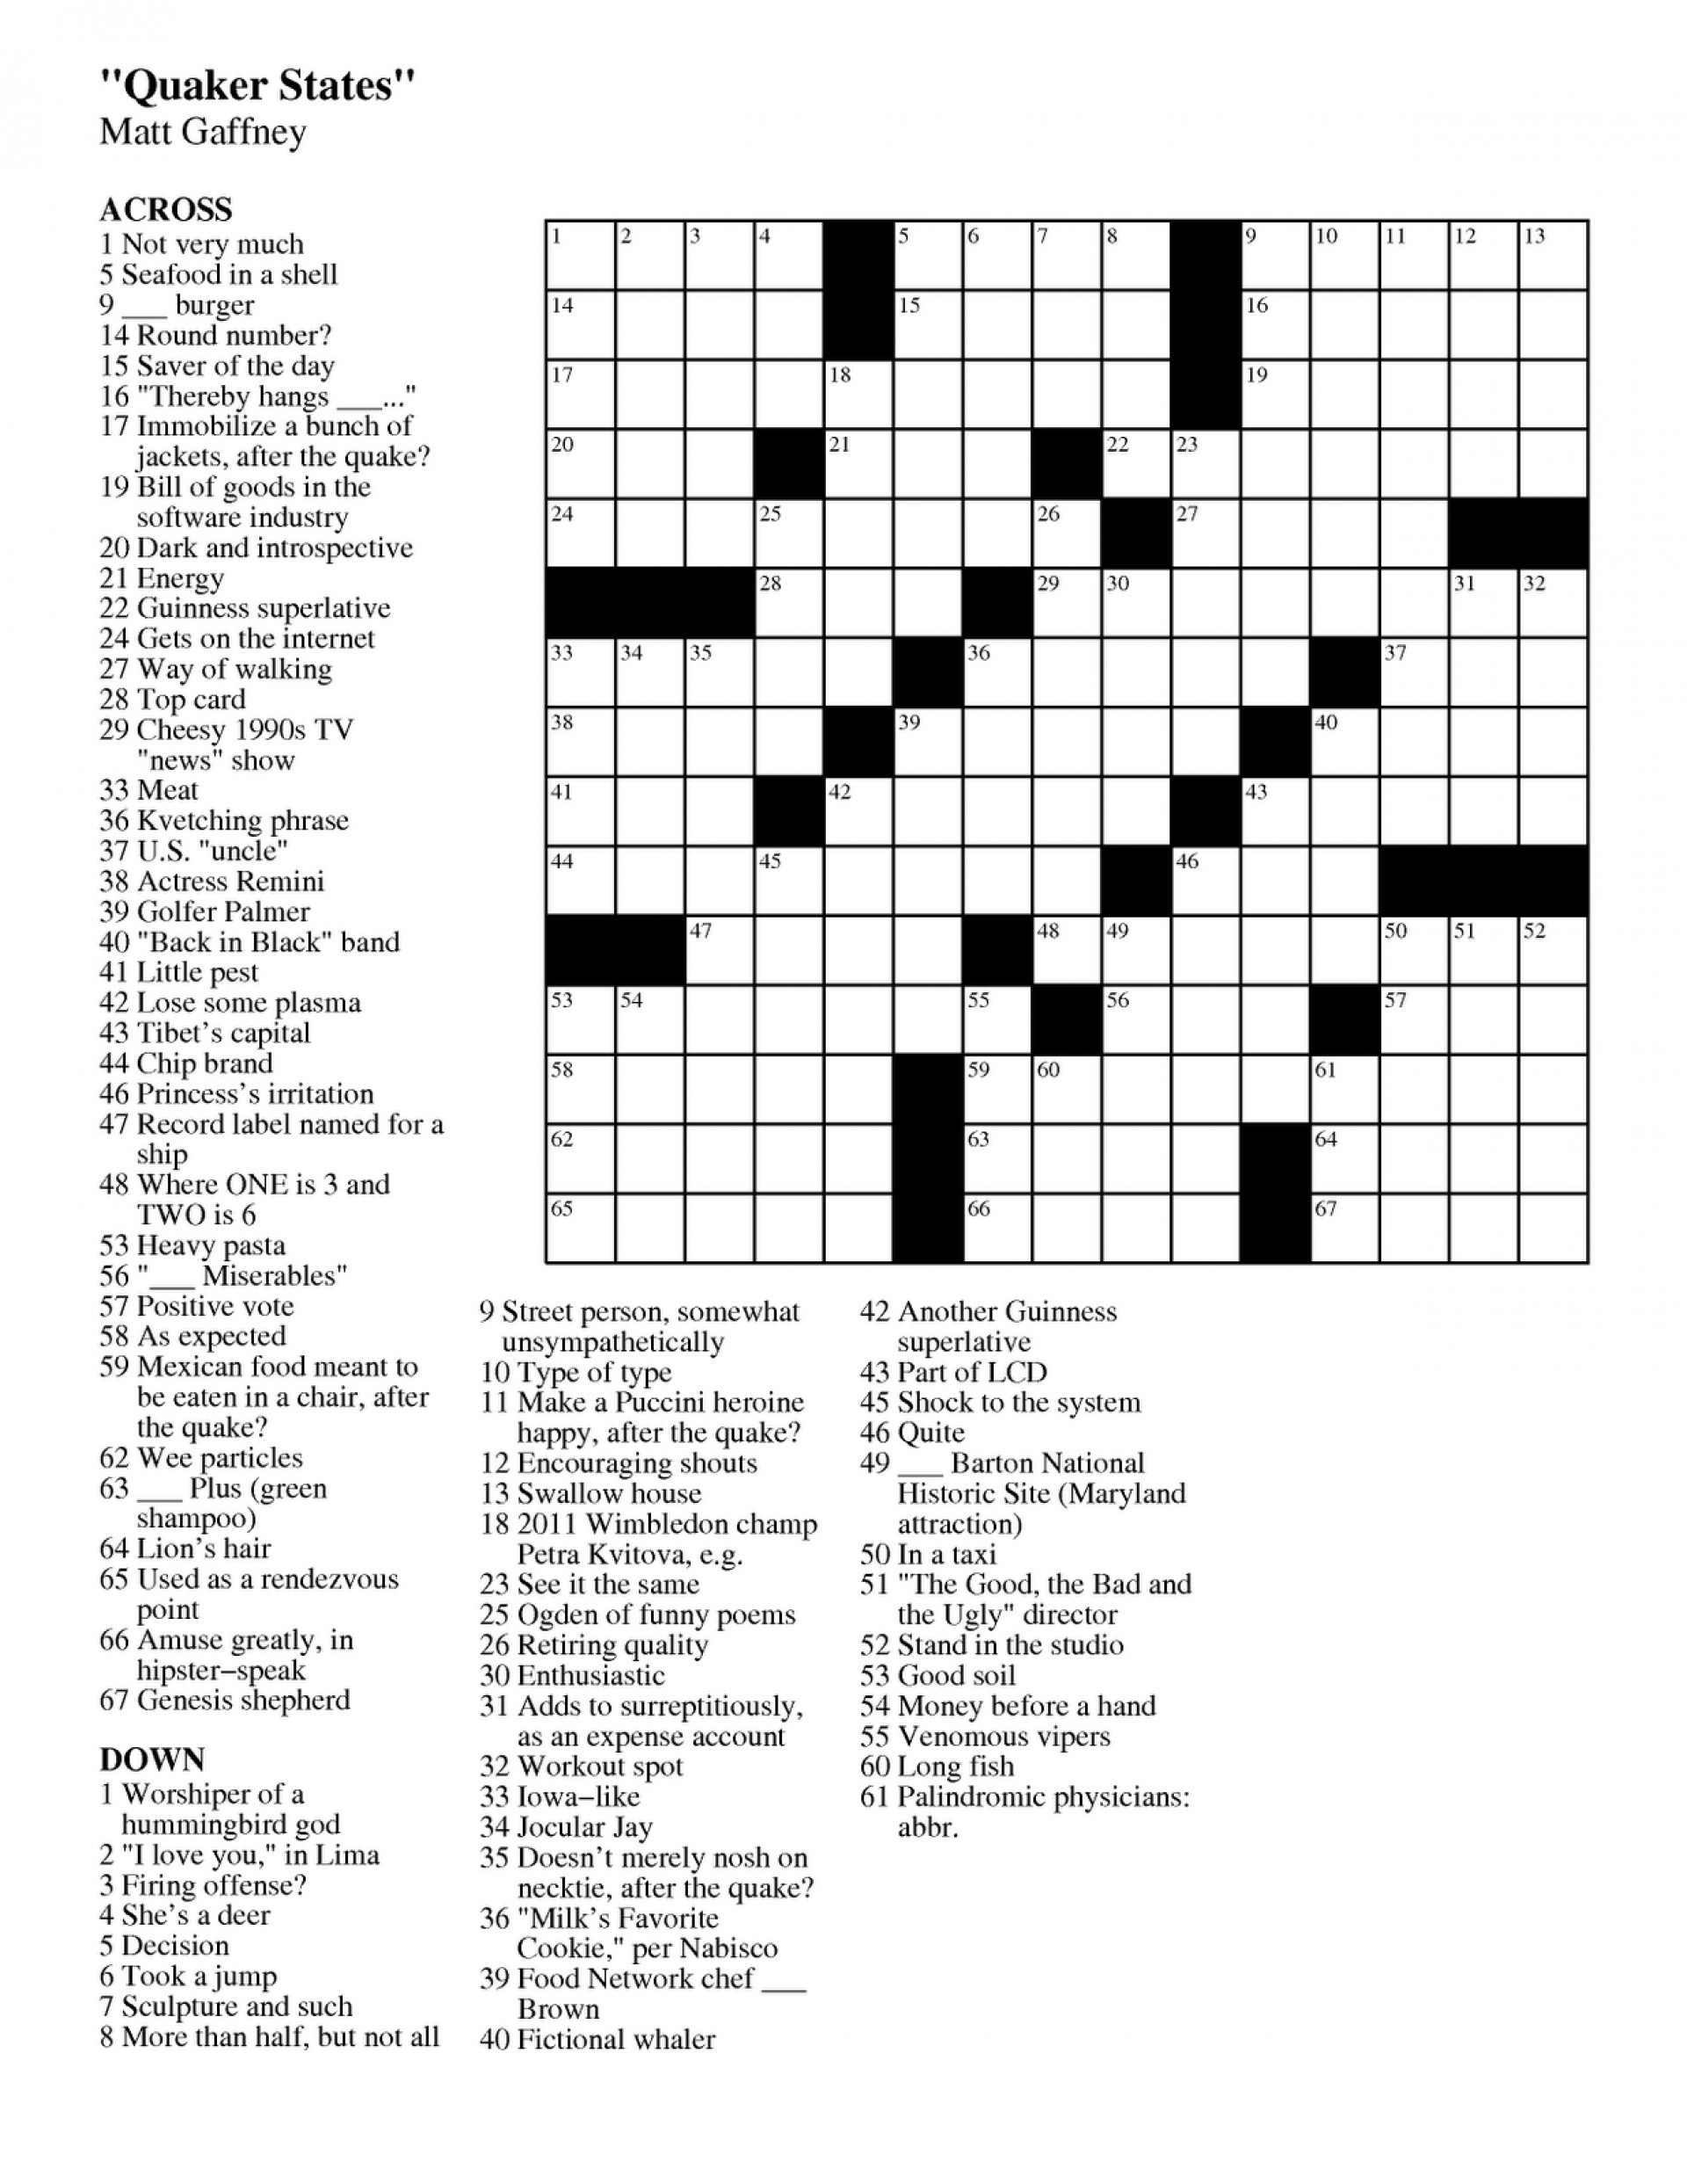 Beekeeper Crosswords In Middle School Easy Crossword Puzzles - Printable Crossword Middle School